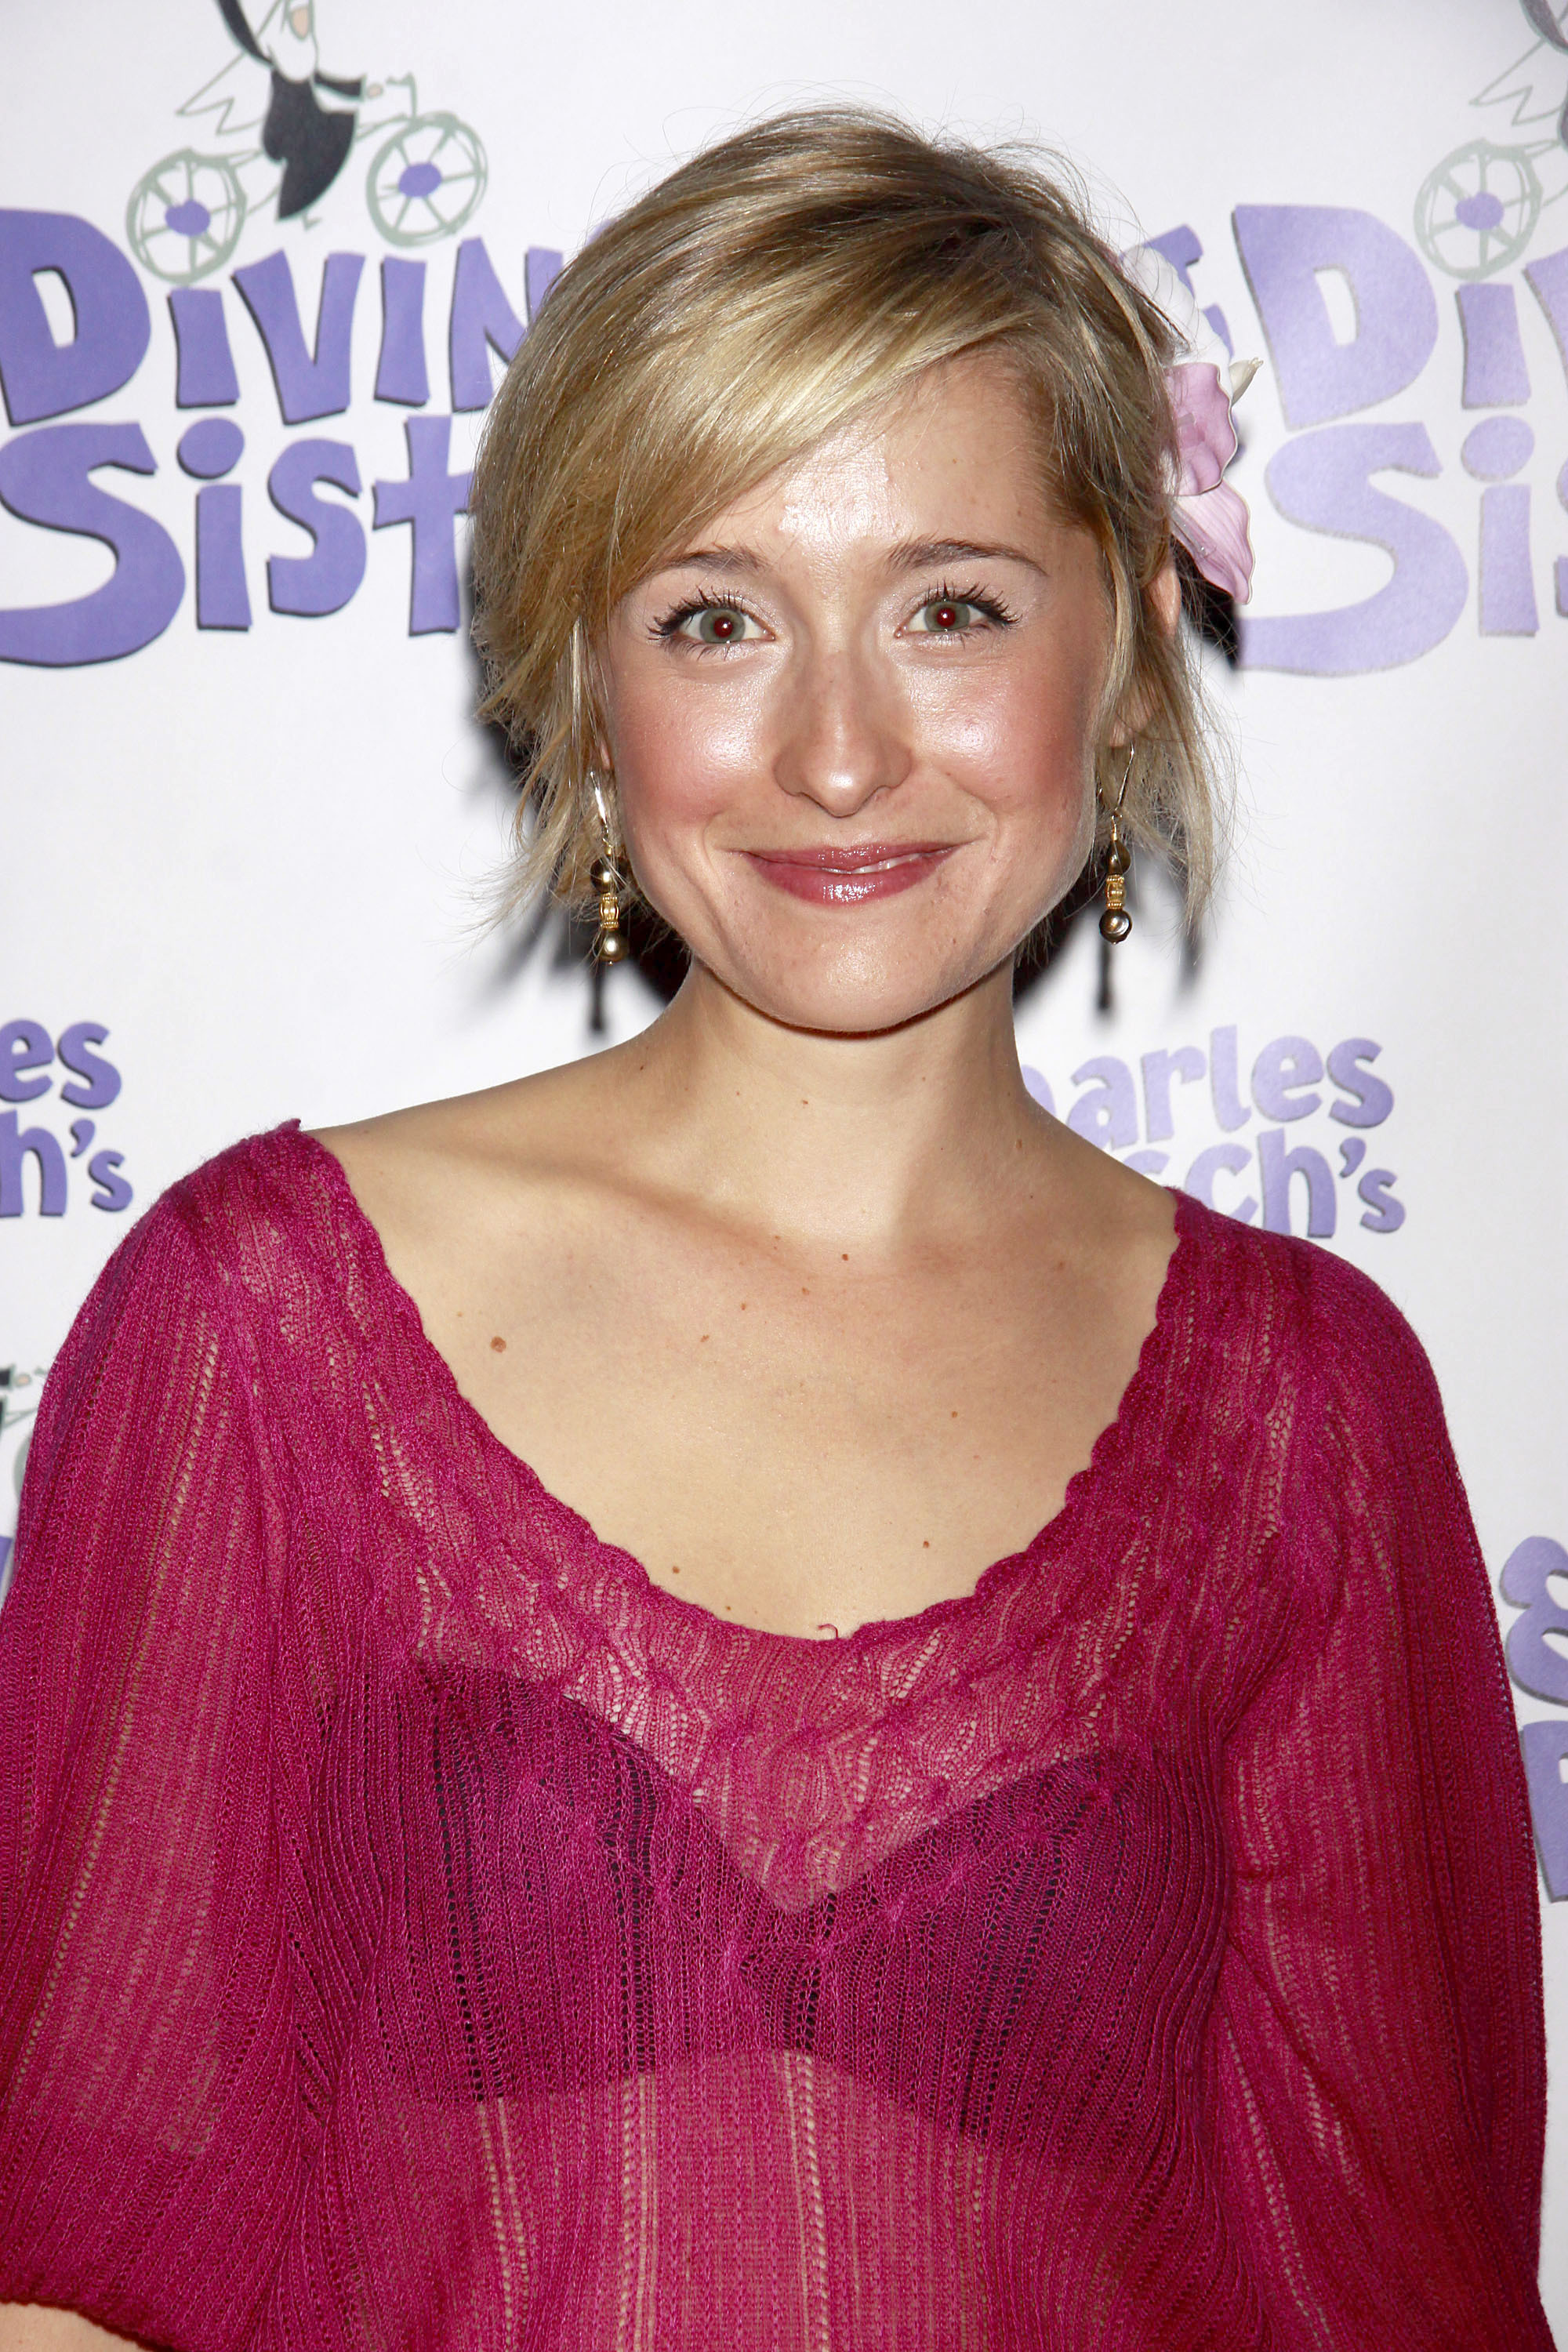 Allison MackThe opening night of the Off-Broadway production of 'Charles Busch's The Divine Sister' at the Soho Playhouse - ArrivalsFeaturing: Allison MackWhere: New York City, United StatesWhen: 22 Sep 2010Credit: WENN